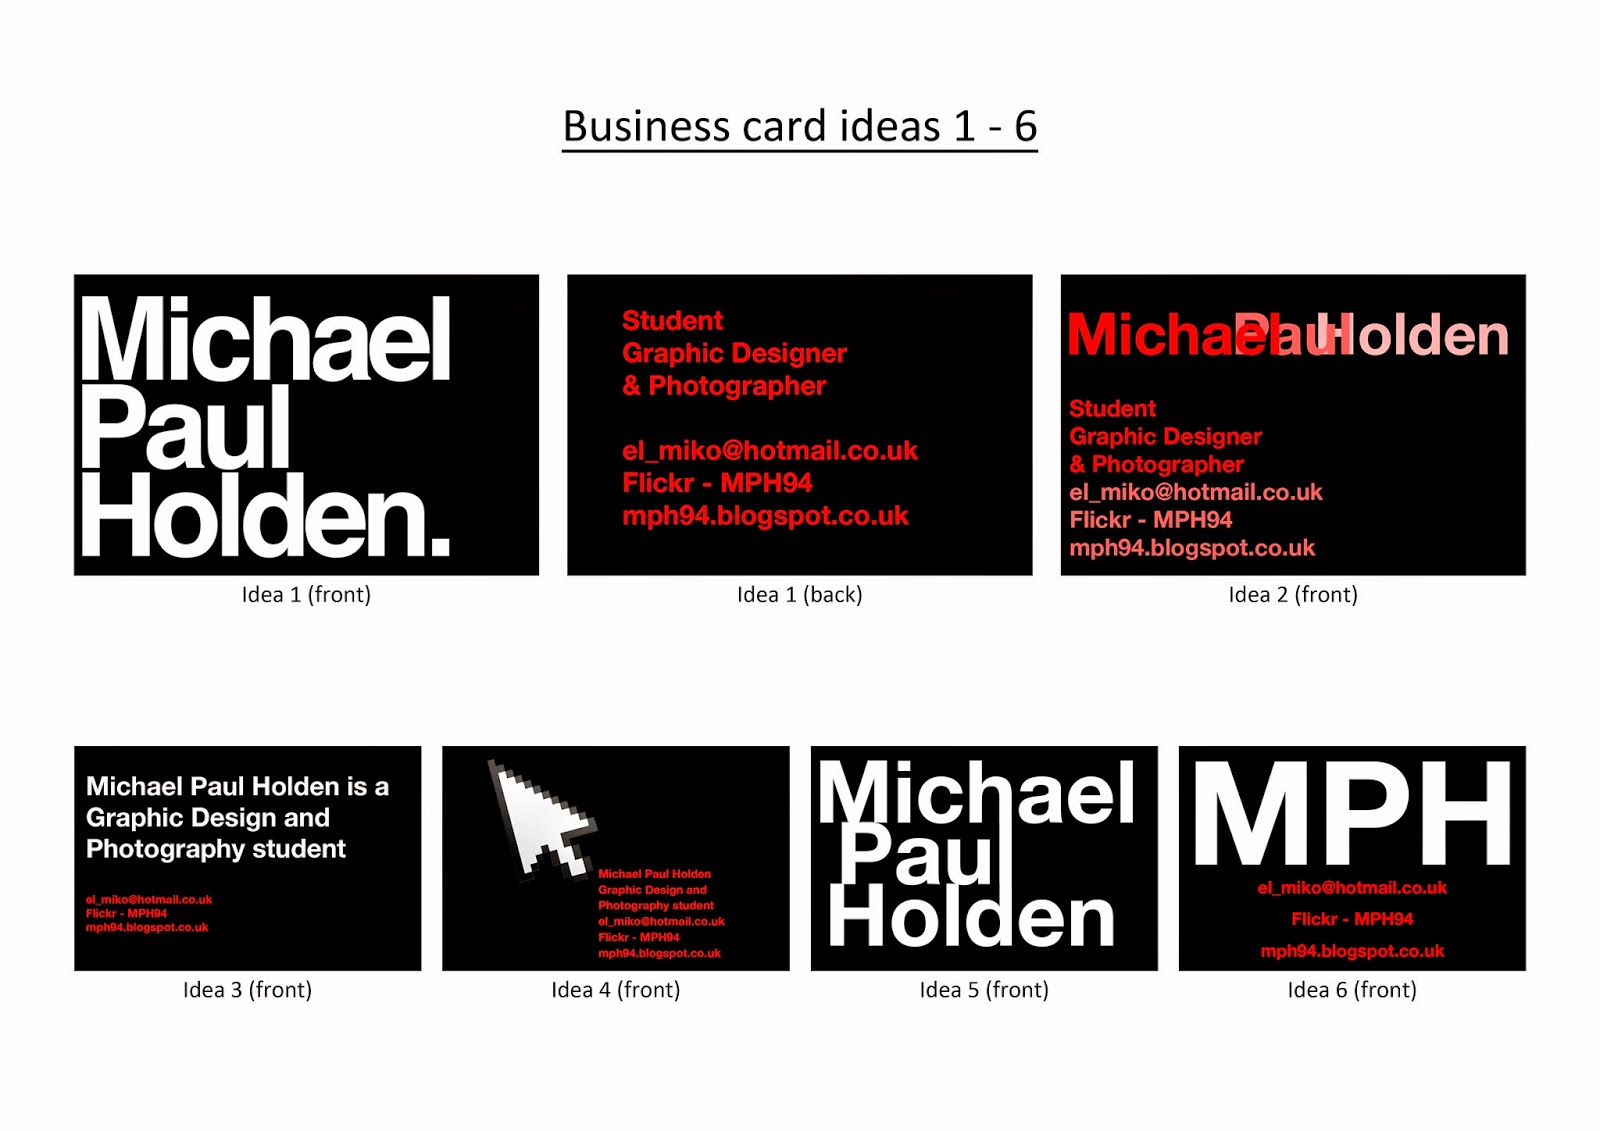 Michael Paul Holden - Graphic Design and Photography student ...